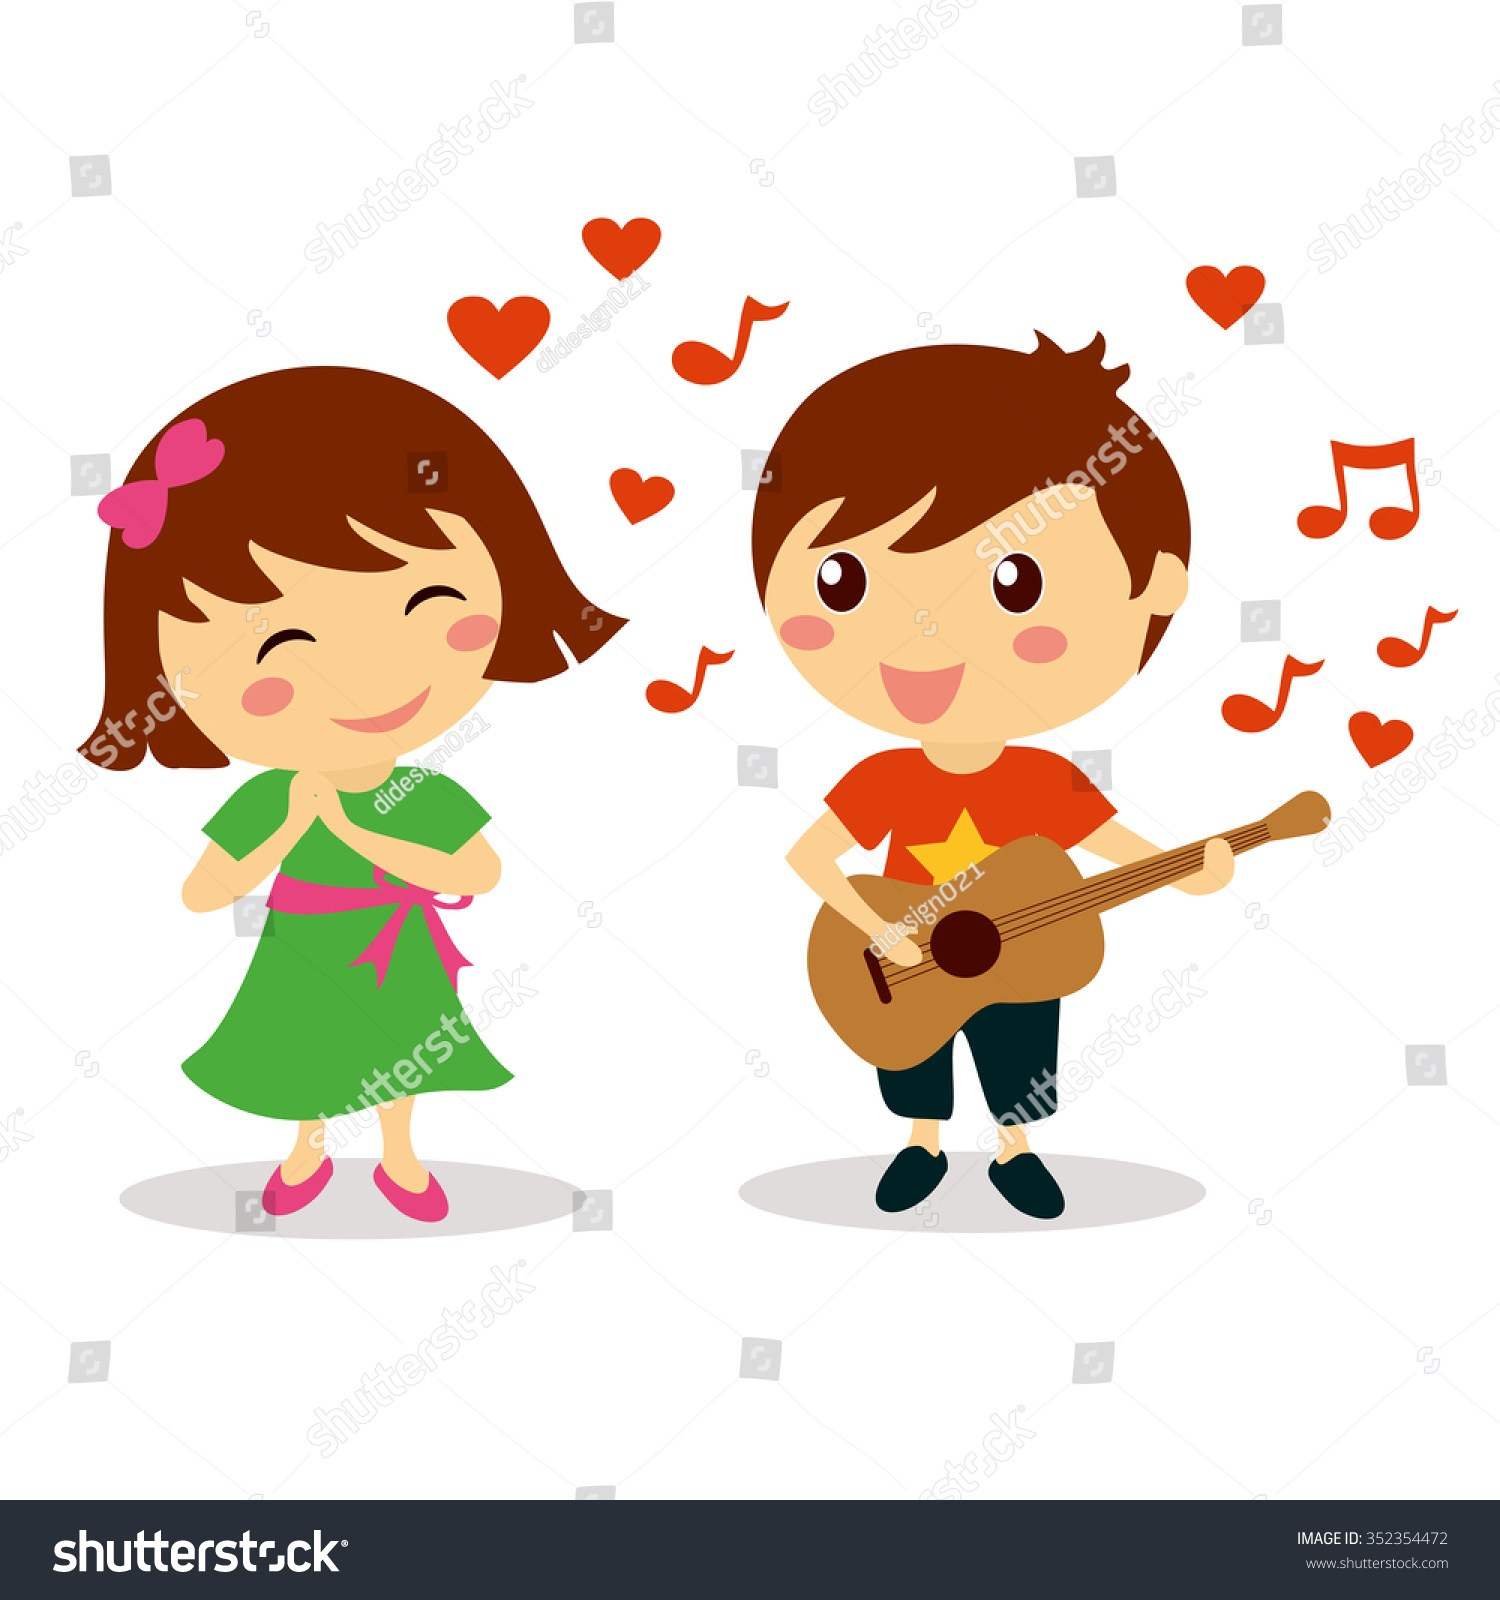 Boy and girl in love clipart 4 » Clipart Portal.